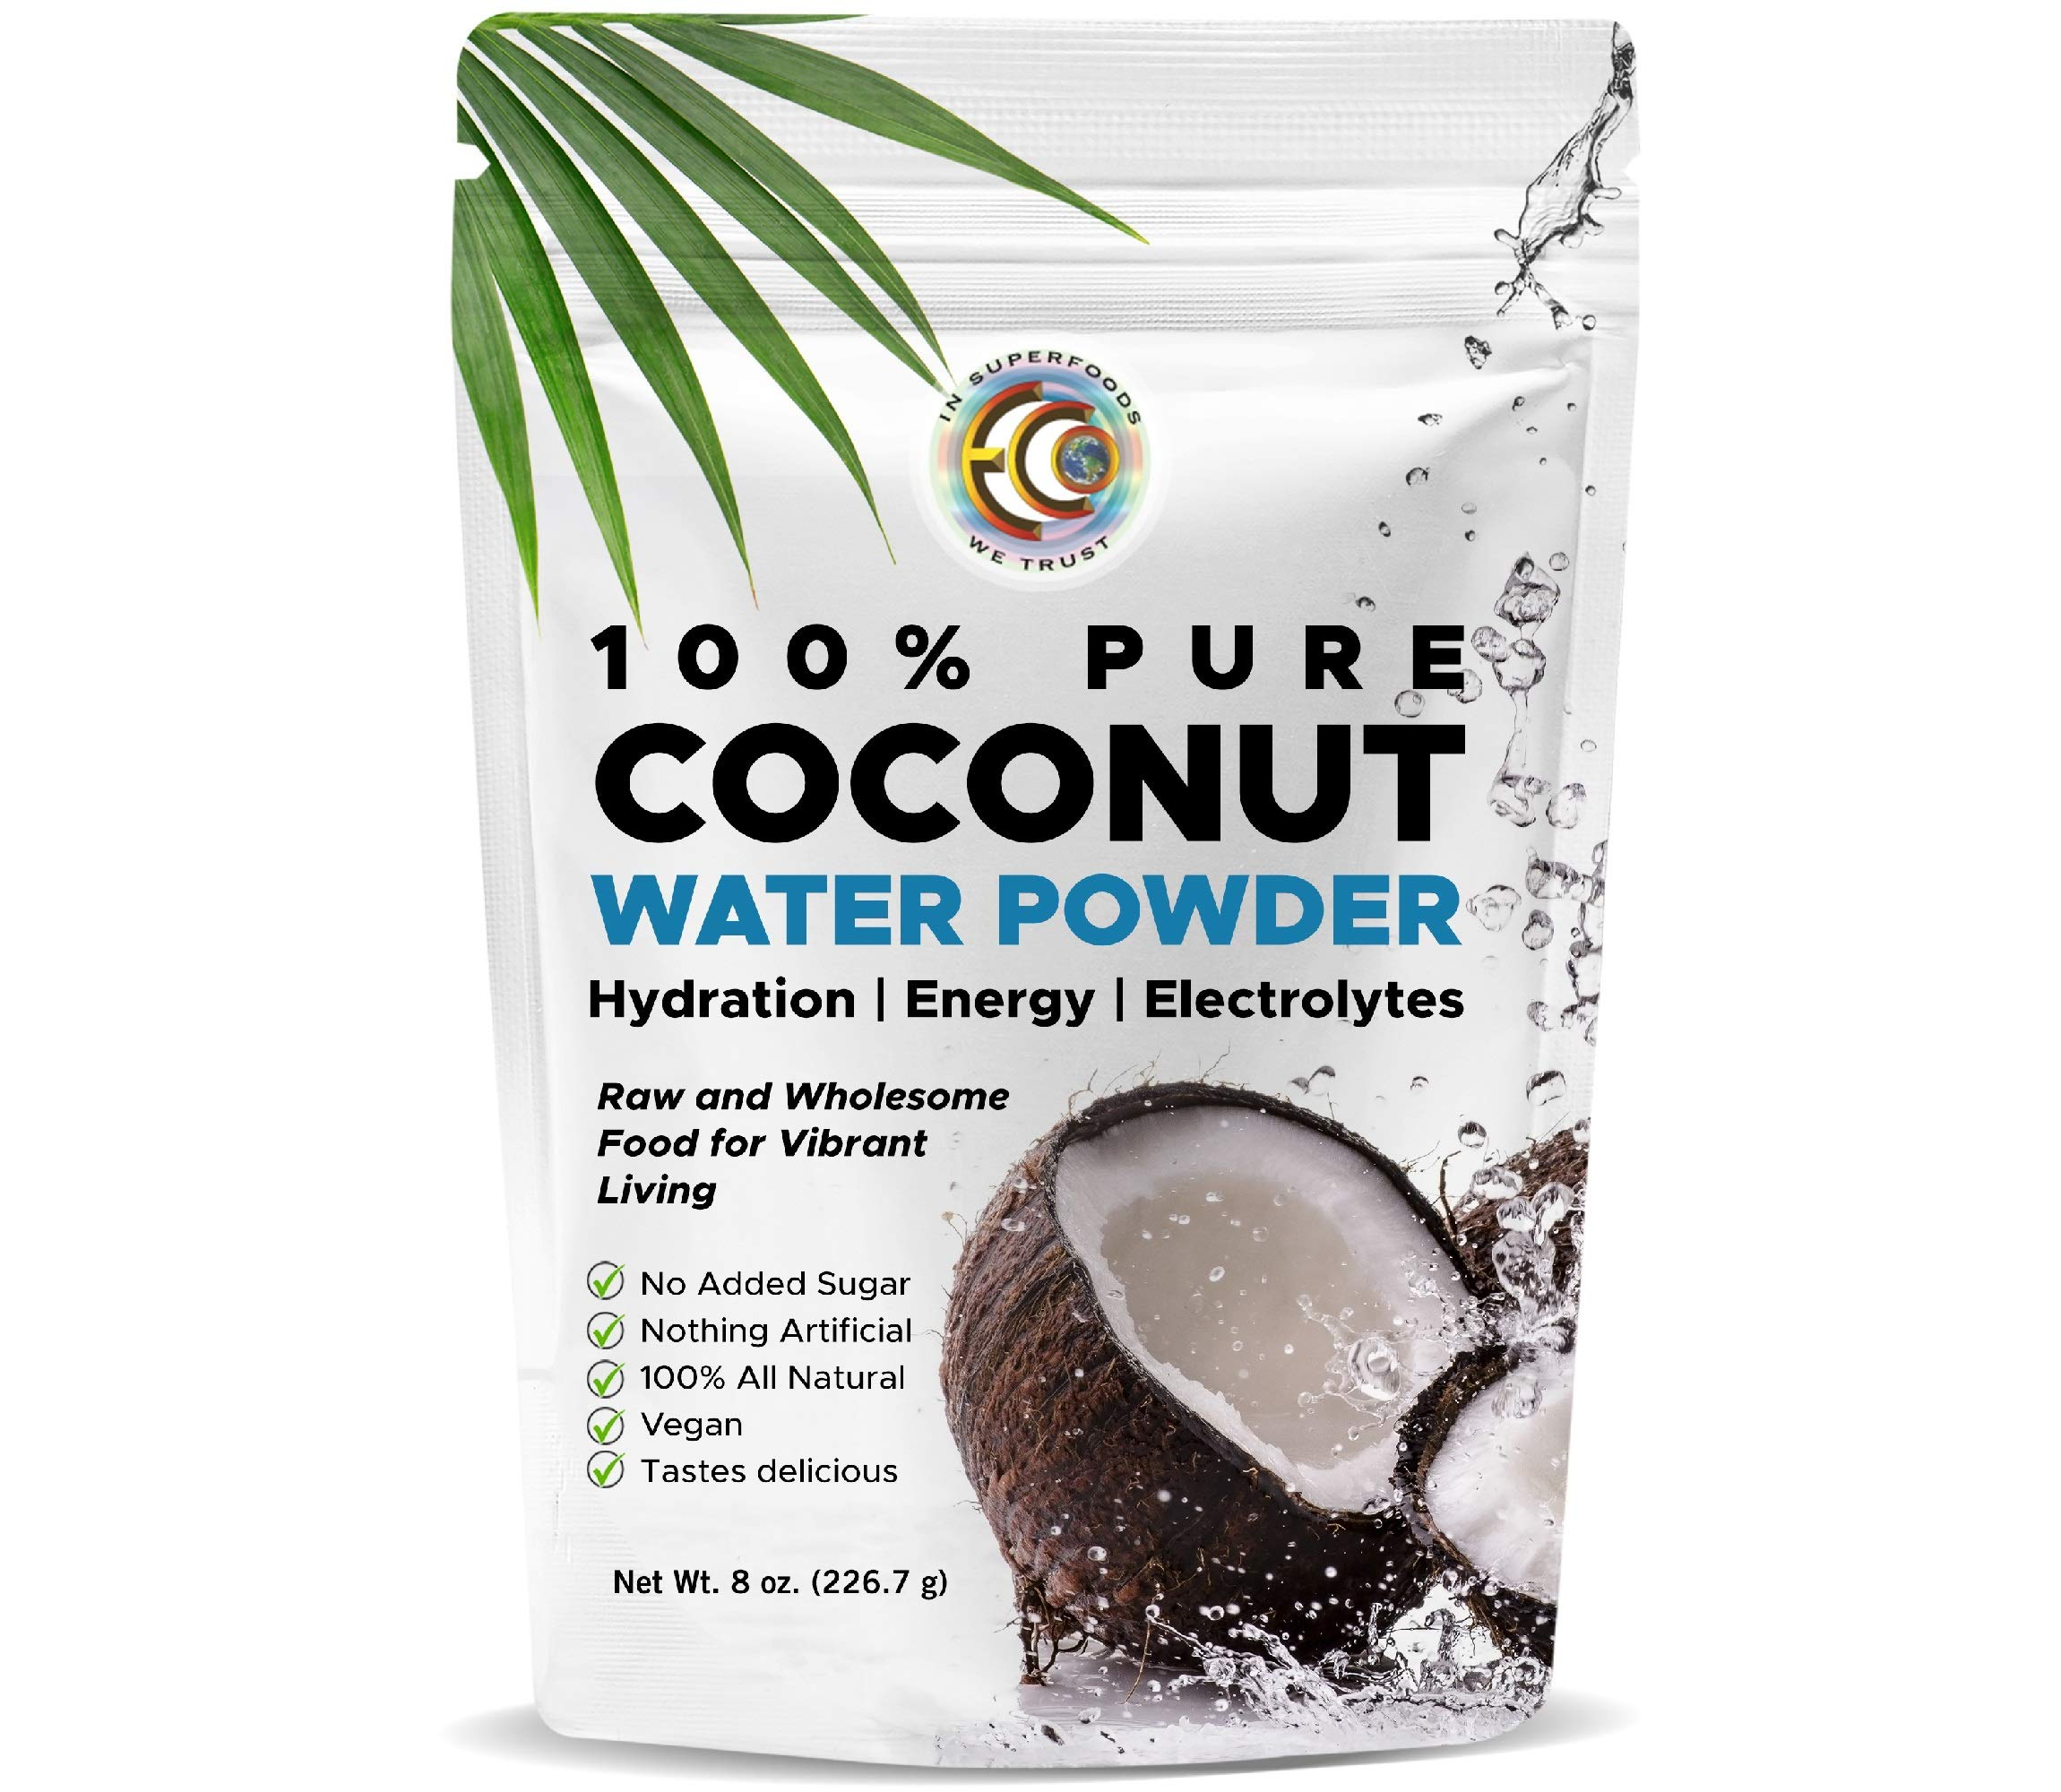 Earth Circle Organics Pure Coconut Water Powder | Hydration | Energy and Electrolyte Supplement | No Additives or Added Sugar | Vegan | Gluten Free - 8oz